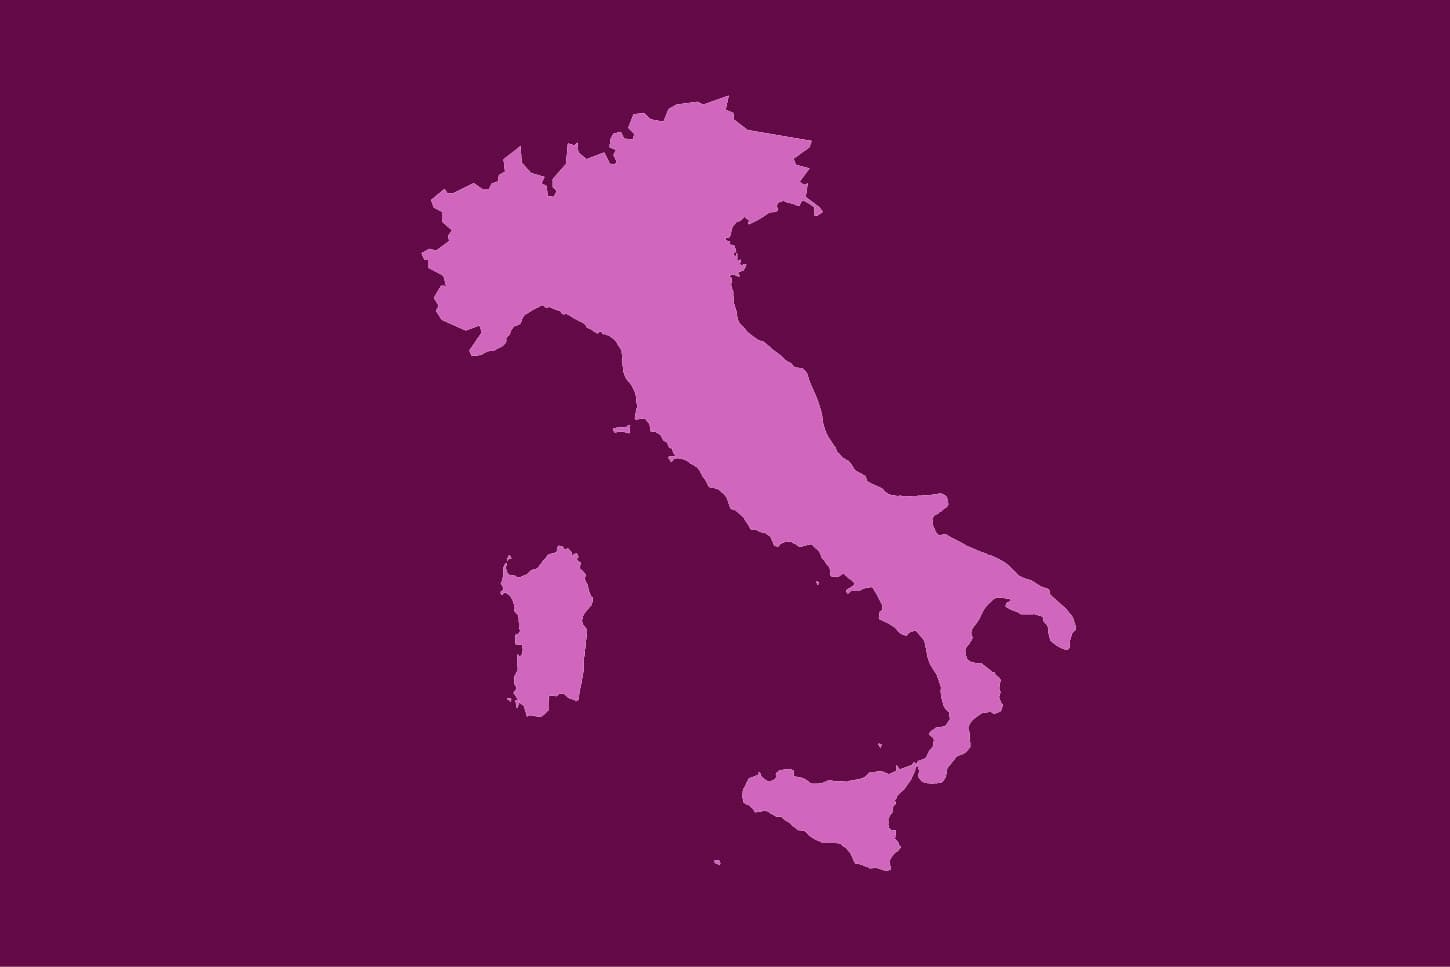 Map image of Italy in shades of purple